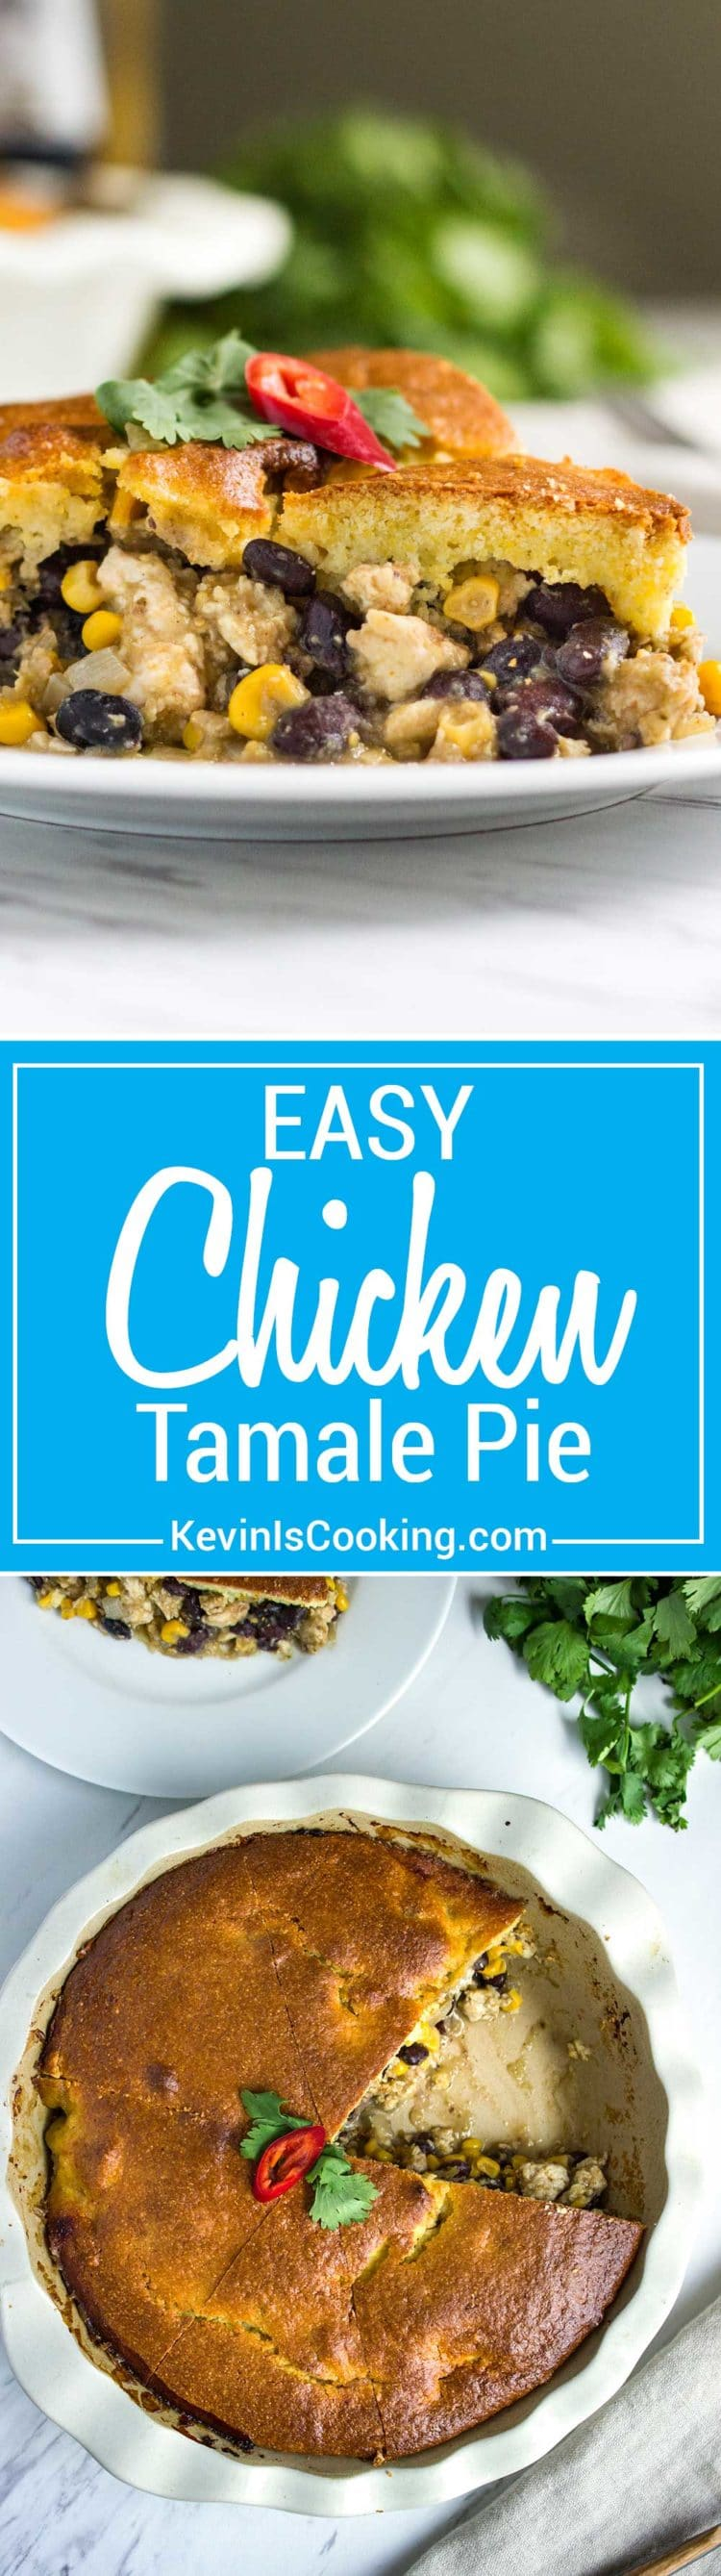 Easy Chicken Tamale Pie - made from ground chicken, spices, corn and beans all topped with a cornbread batter that's baked and ready in minutes.